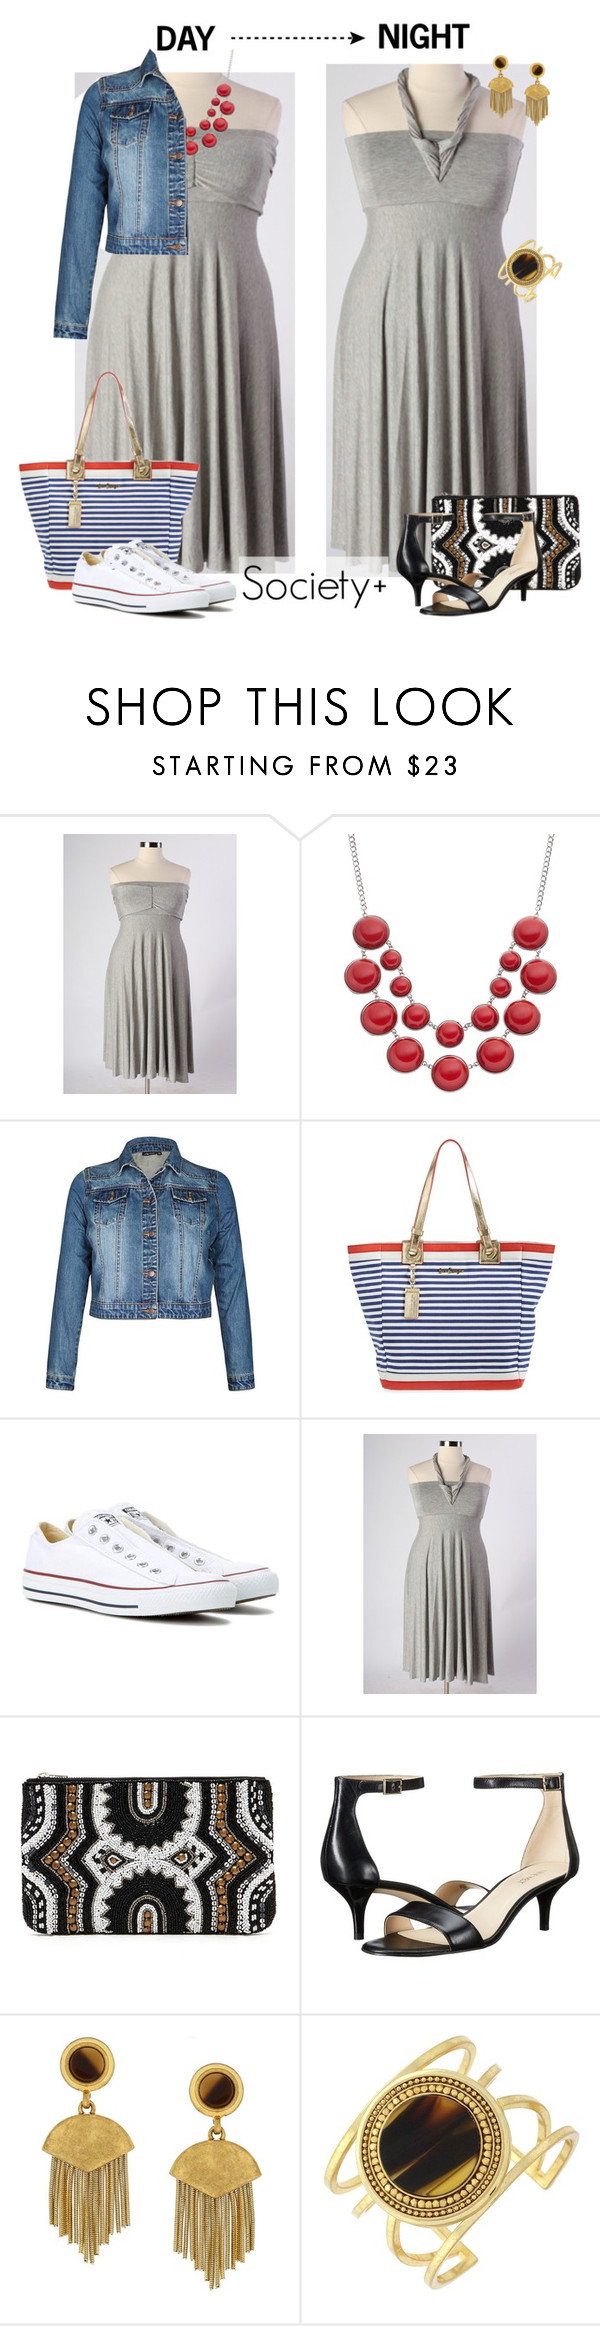 """Plus Size Day to Night - Society+"" by iamsocietyplus on Polyvore featuring Lilly Pulitzer, Converse, Forever 21, Nine West, Vince Camuto, plussize, plussizefashion, societyplus and iamsocietyplus"